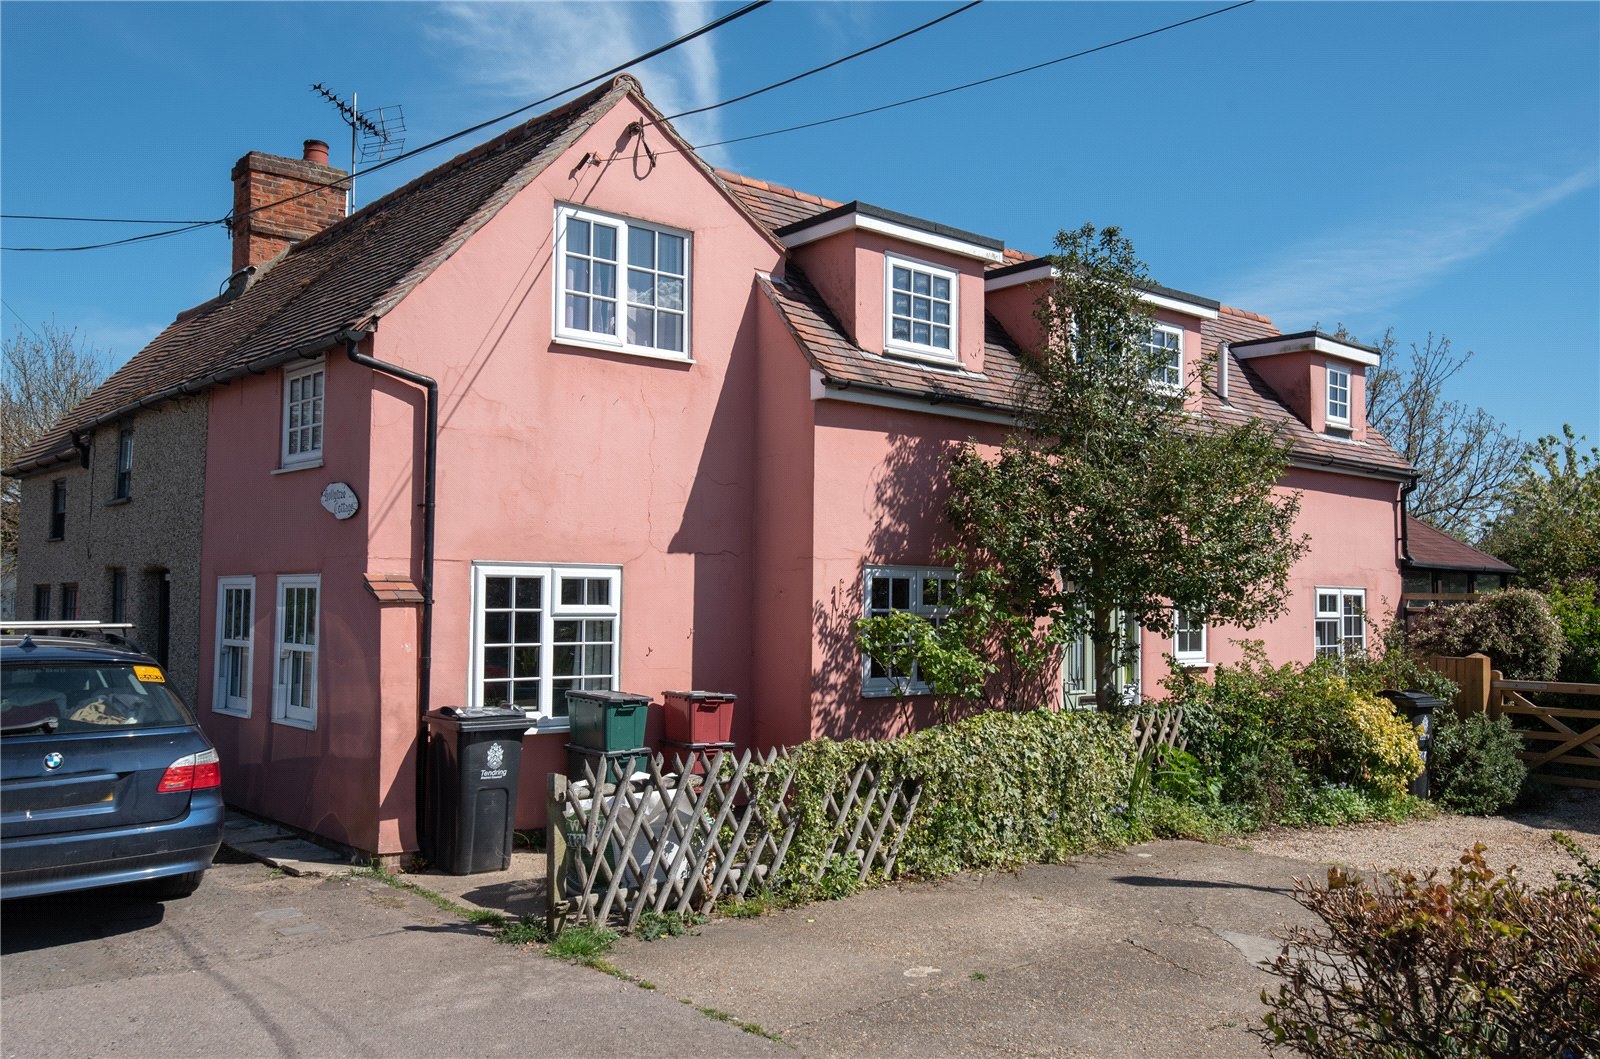 3 bed house for sale in The Street, Tendring, Clacton-on-Sea, CO16